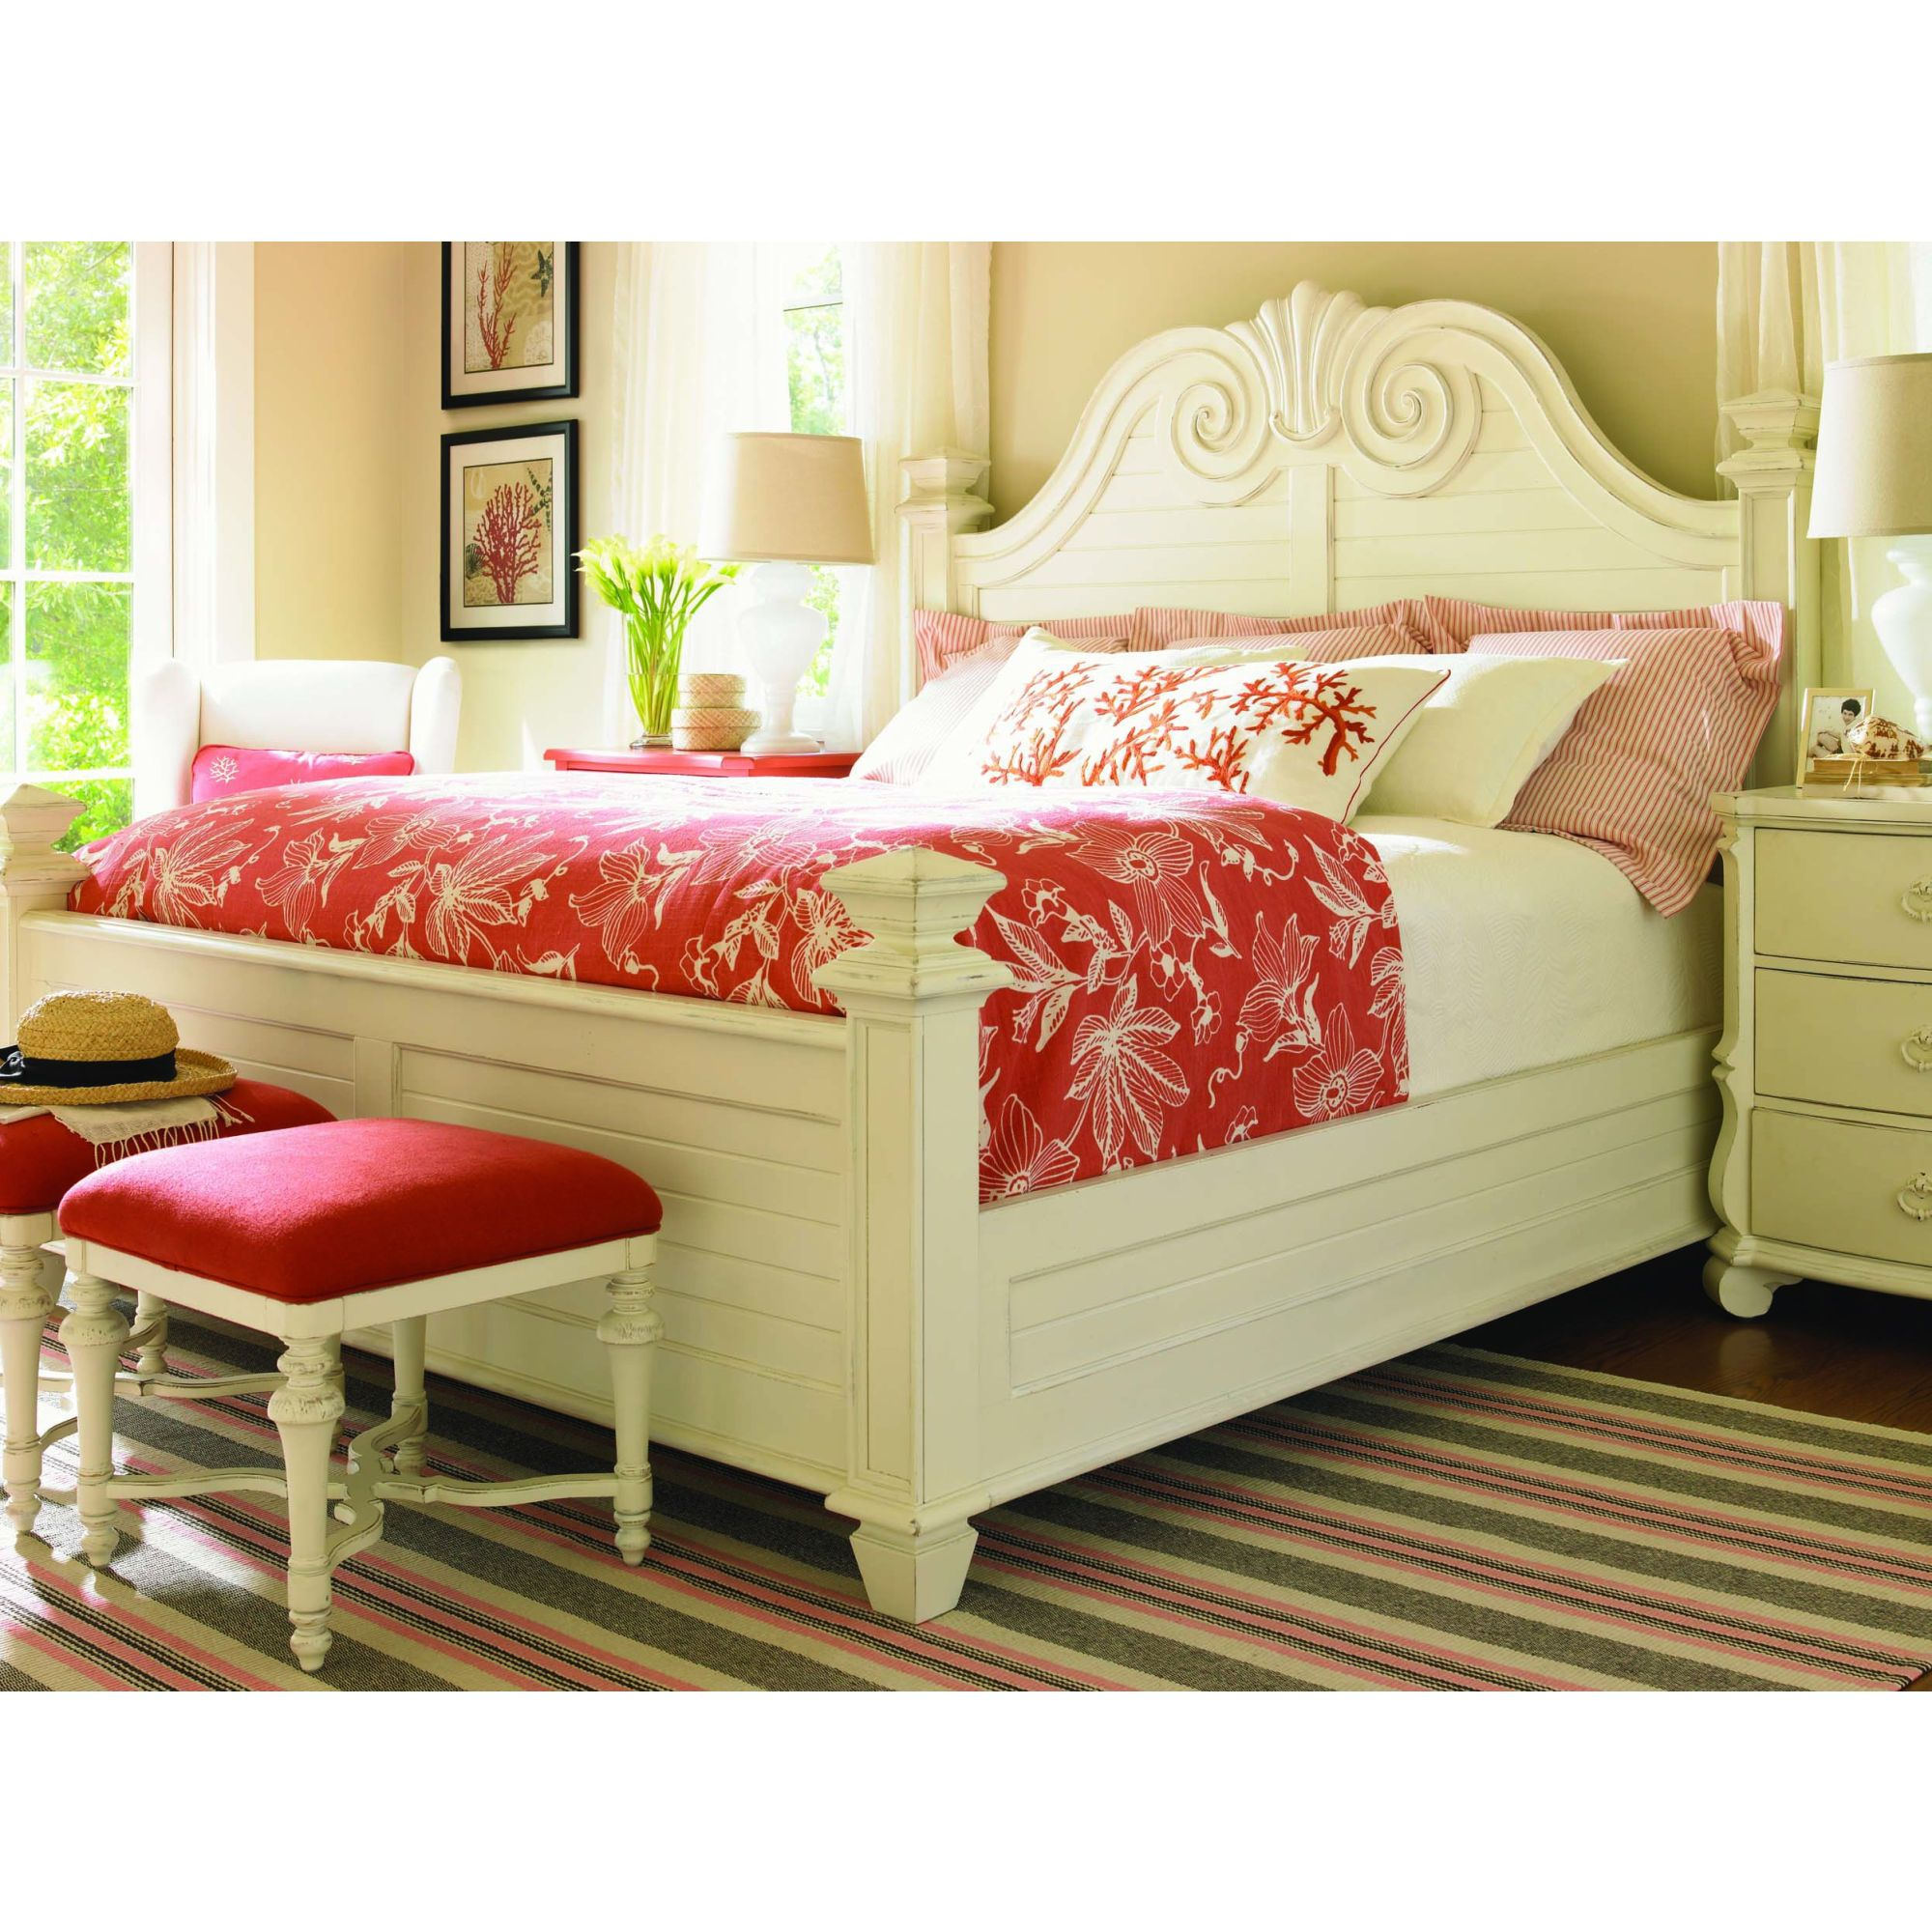 Lexington Bedroom Sets Magnificent Lexington Long Cove Southampton Panel Bedroom Set In Shellfor Decorating Design